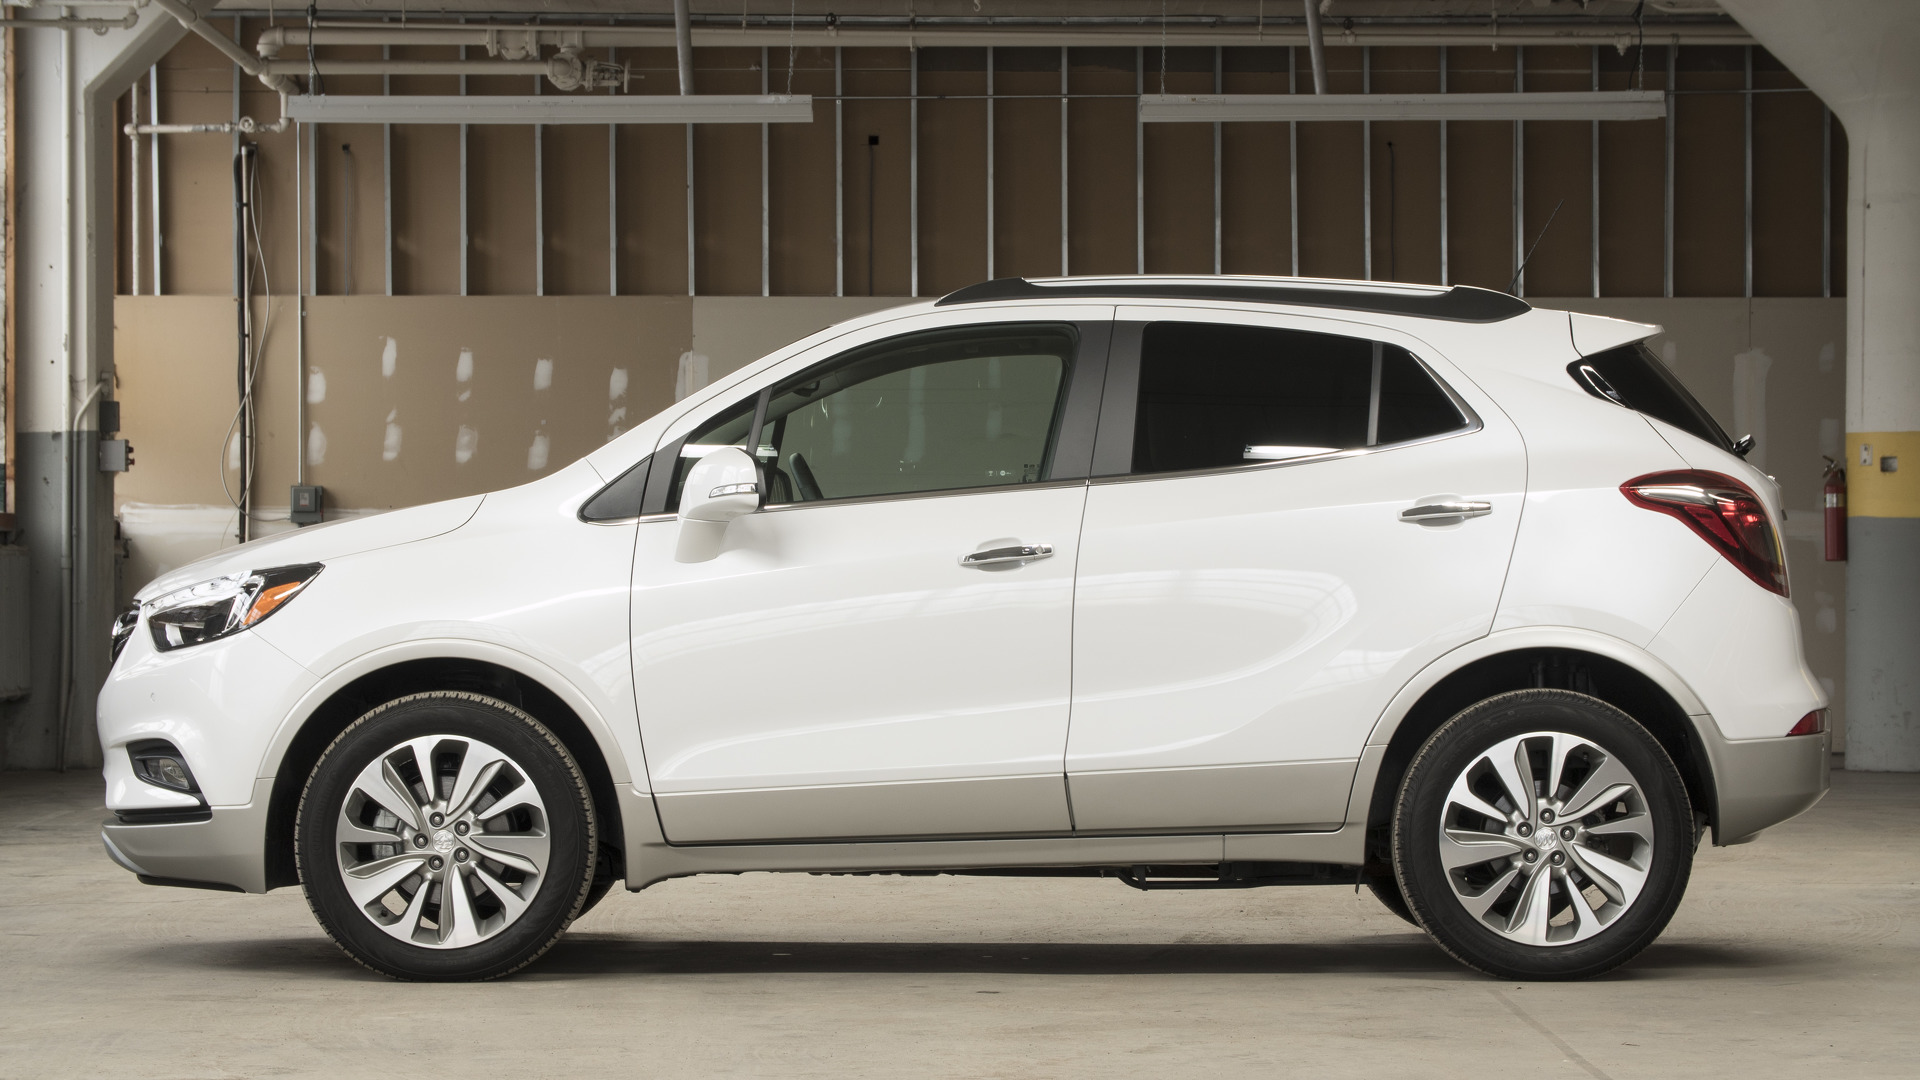 Chevy Equinox Problems >> 2017 Buick Encore Related Keywords - 2017 Buick Encore Long Tail Keywords KeywordsKing